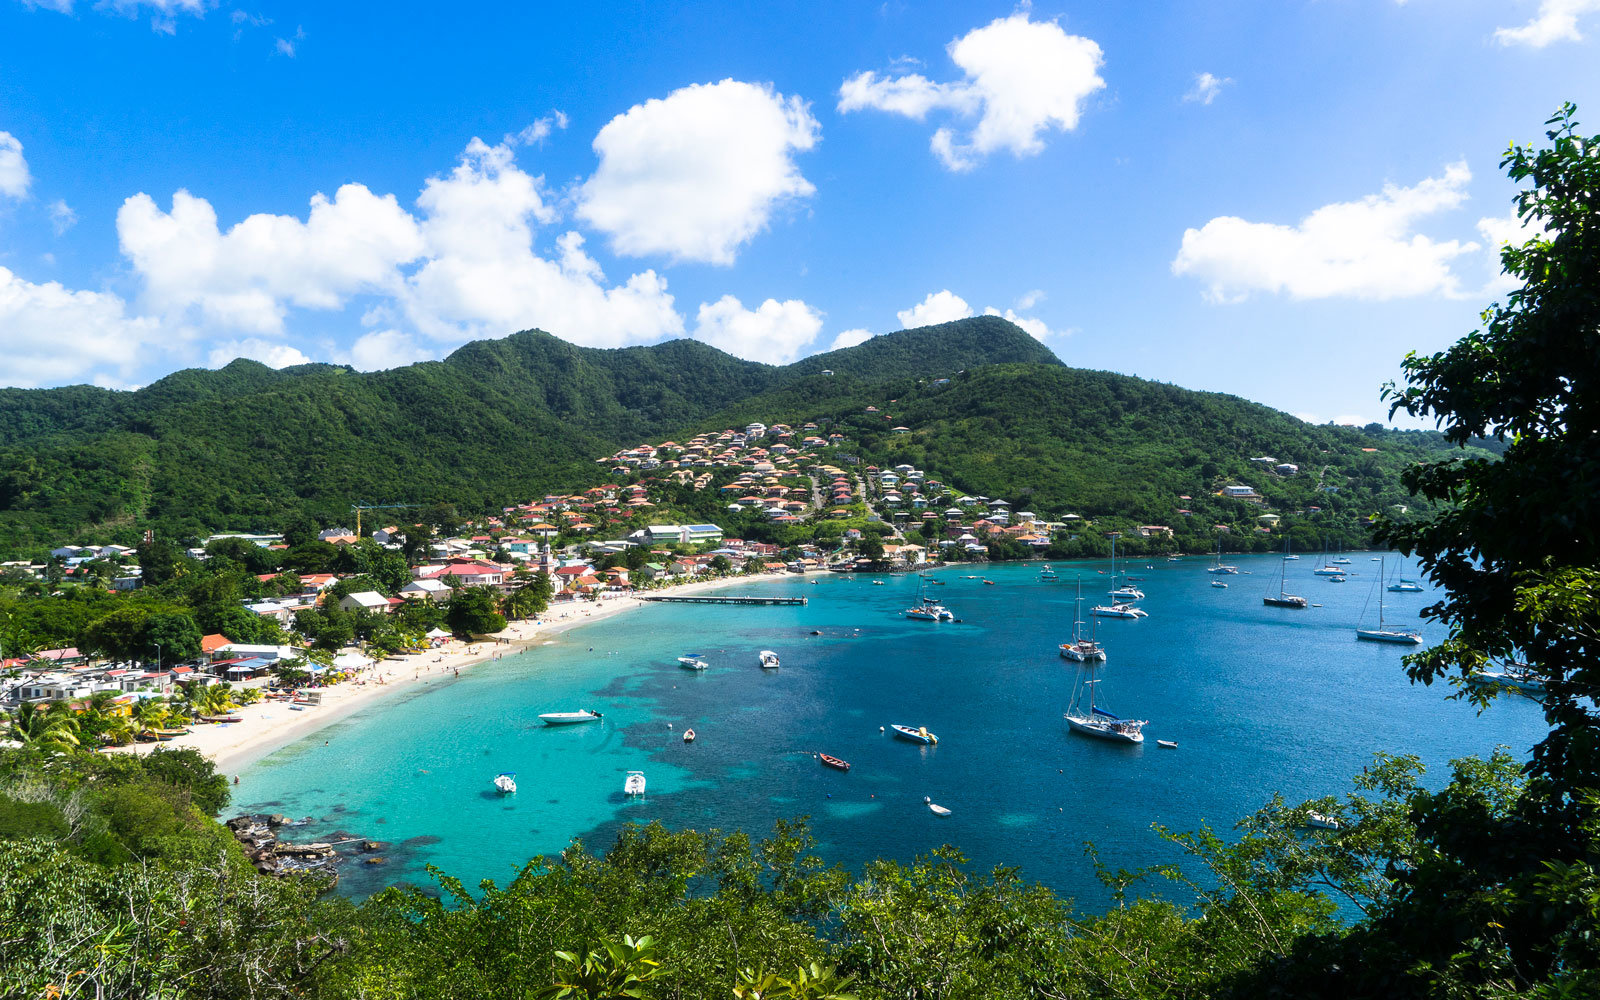 Book Your Dream Caribbean Getaway for As Little As $209 Round-trip